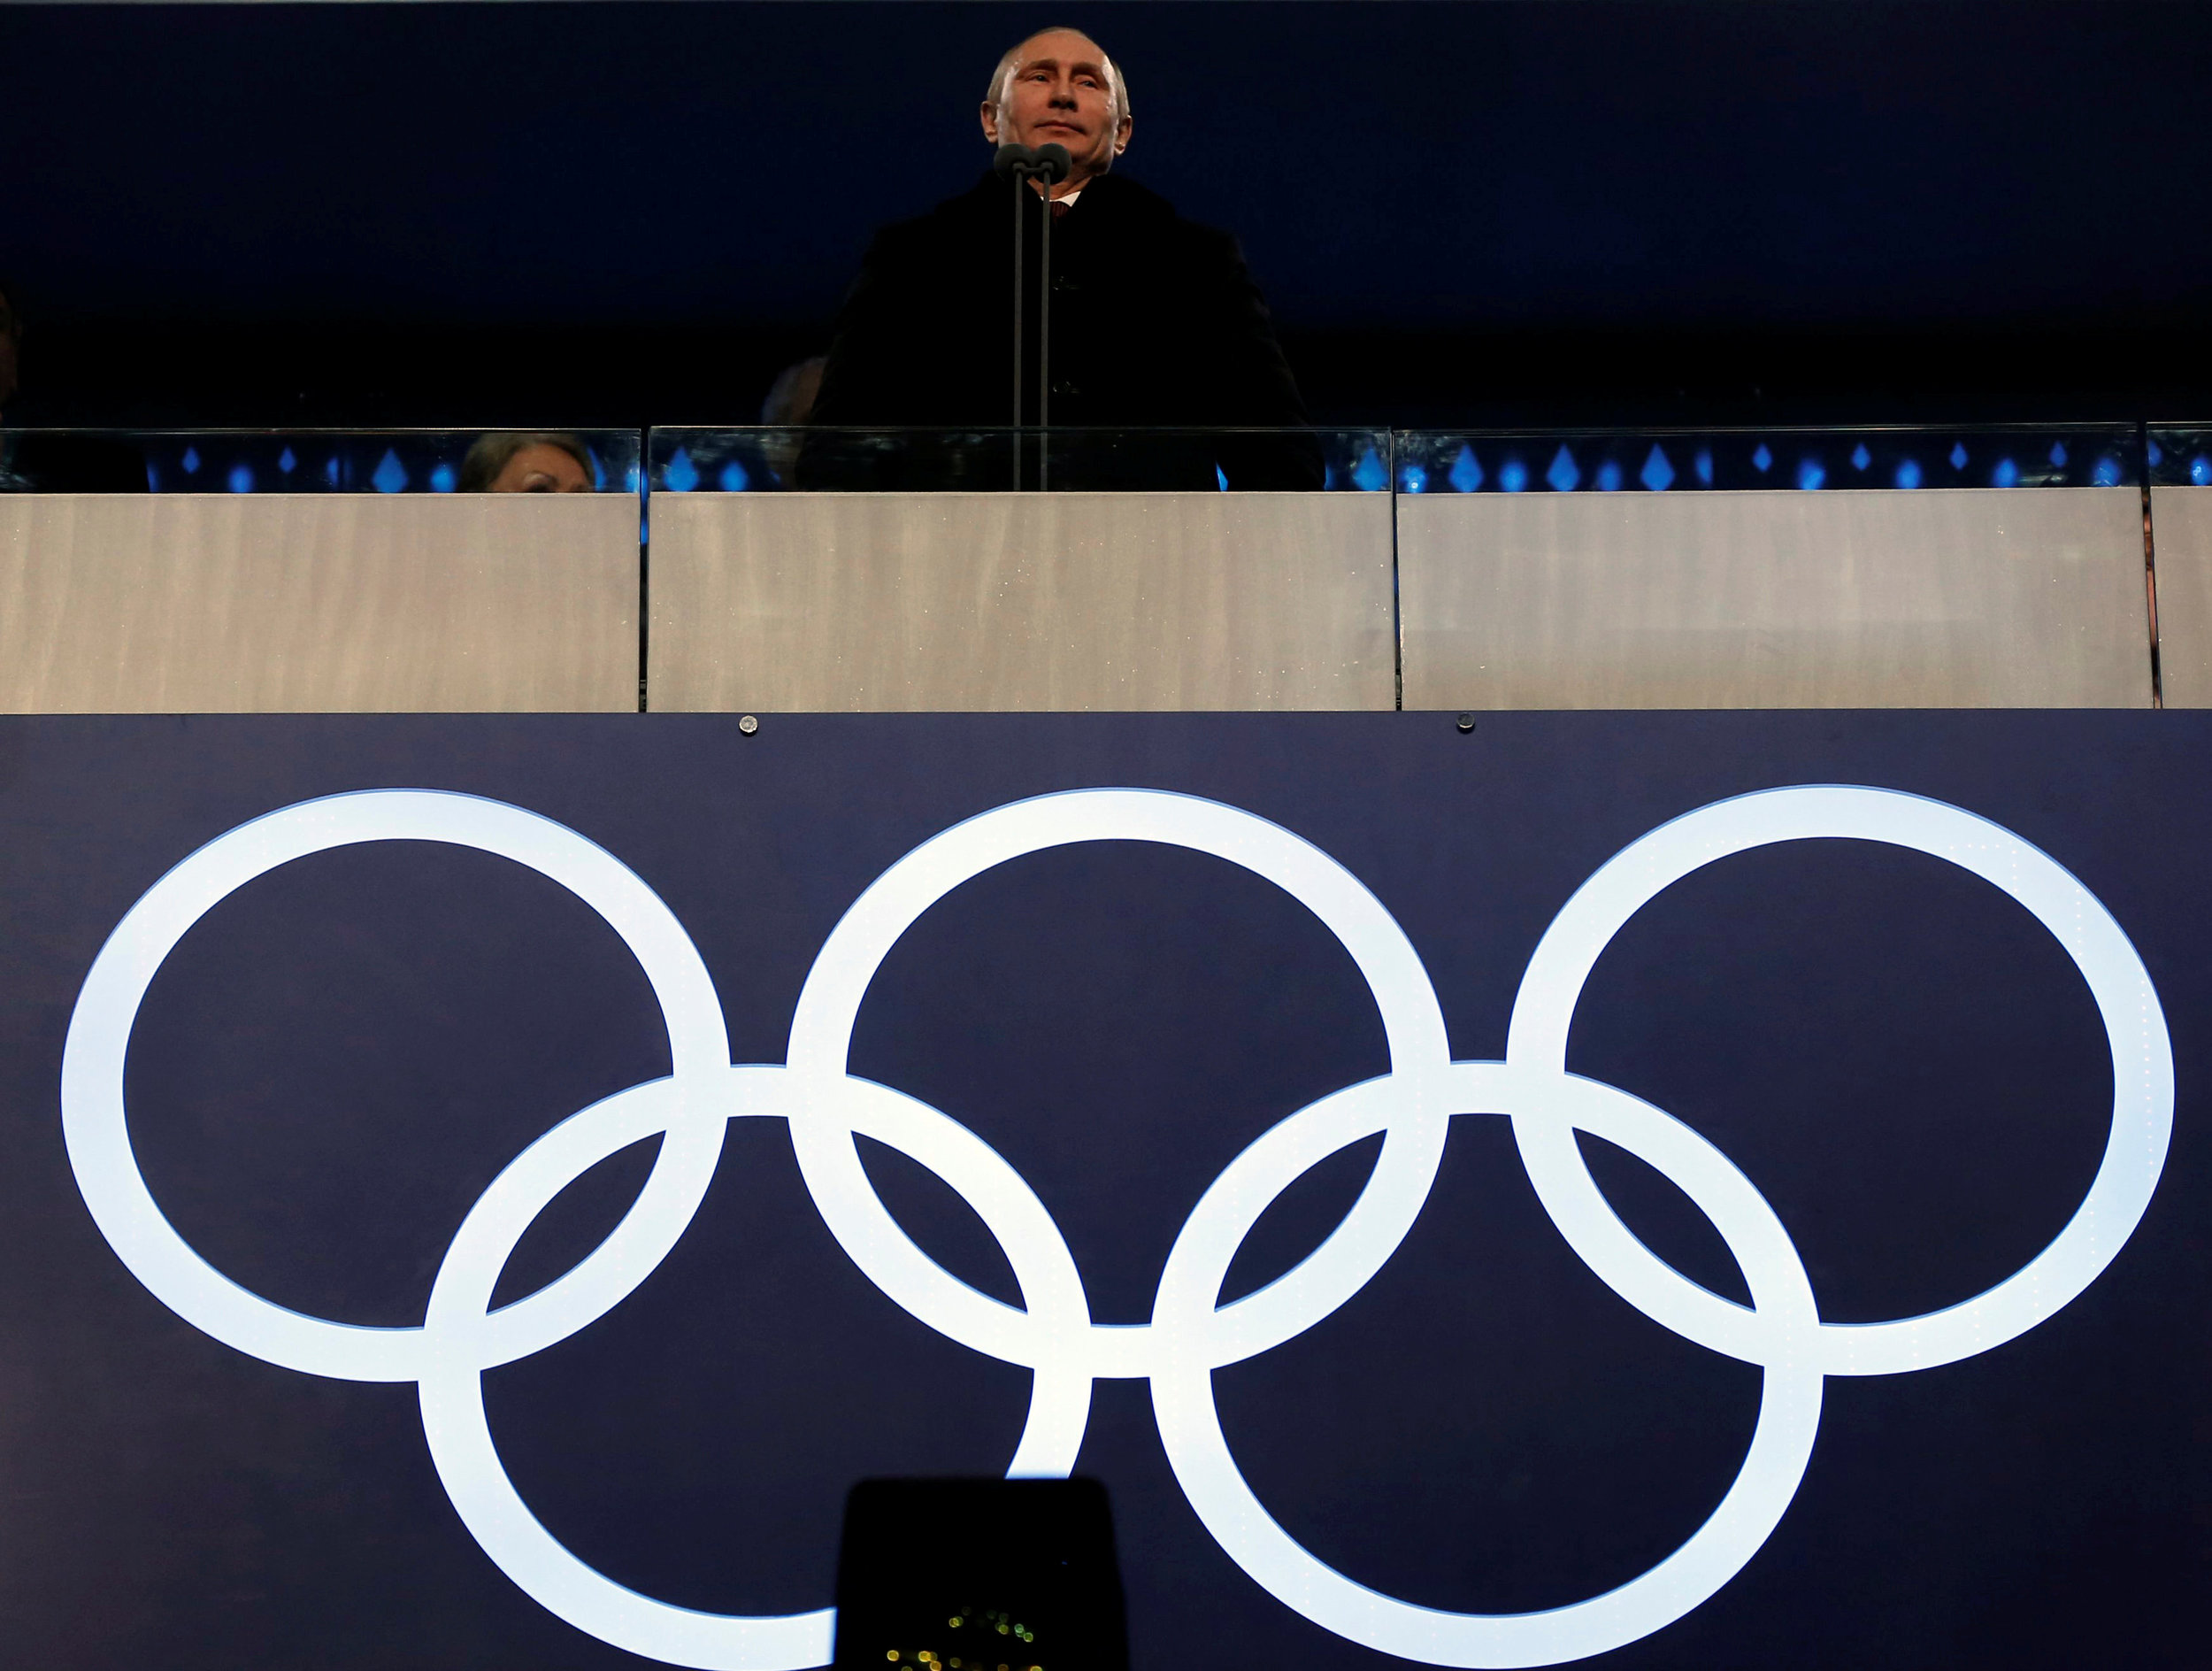 Russian President Vladimir Putin stands during the opening ceremony of the 2014 Sochi Winter Olympics. Putin's government views sport as not only a tool to help build nationallism, but as a weapon to dominate on the world stage. Image supplied by CONQA Sport / Phil Noble.